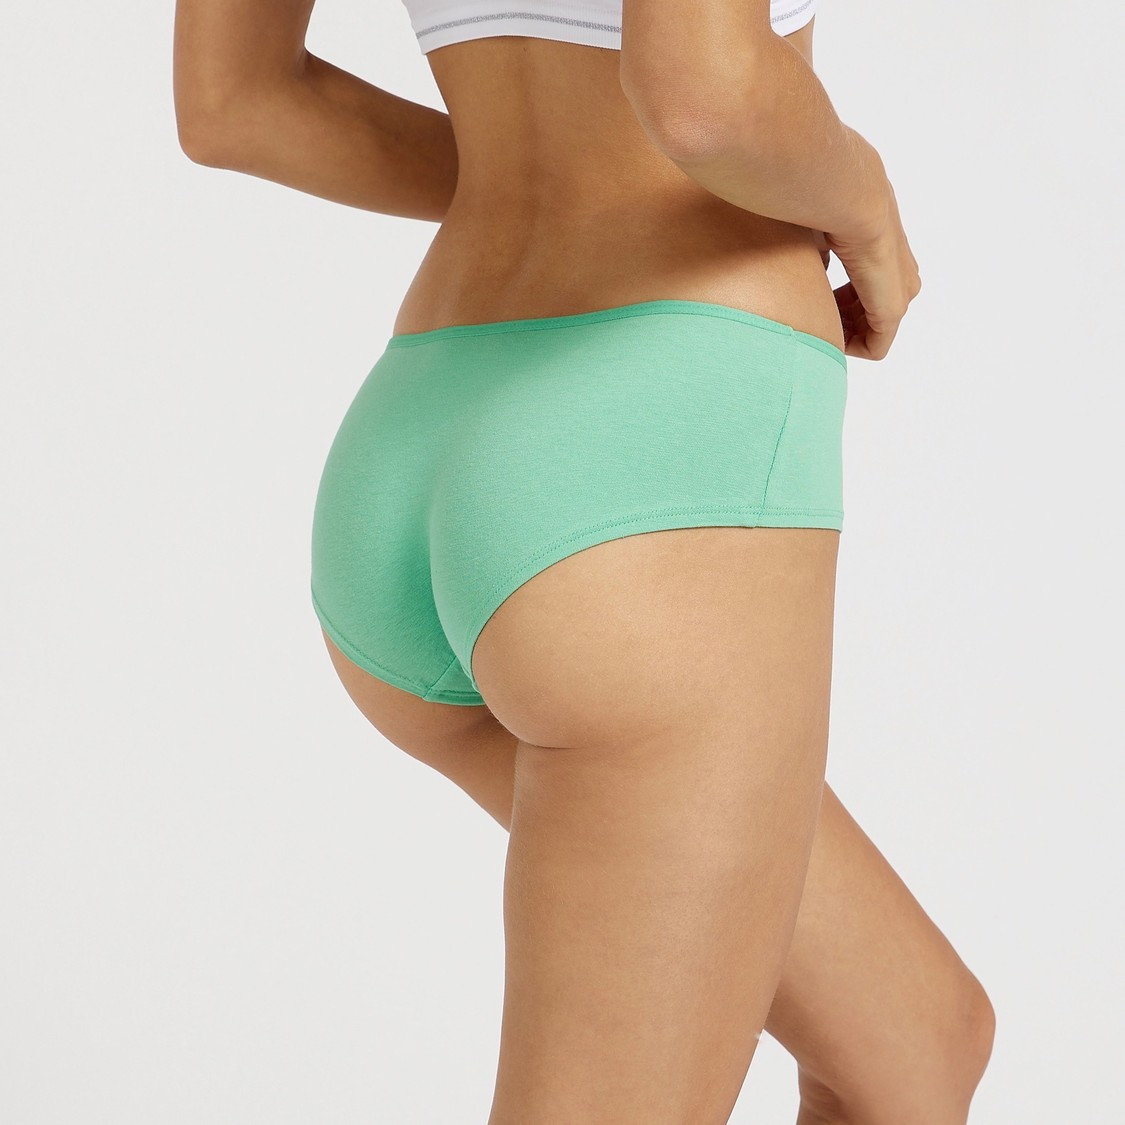 Pack of 5 - Assorted Boyleg Briefs with Elasticised Waistband